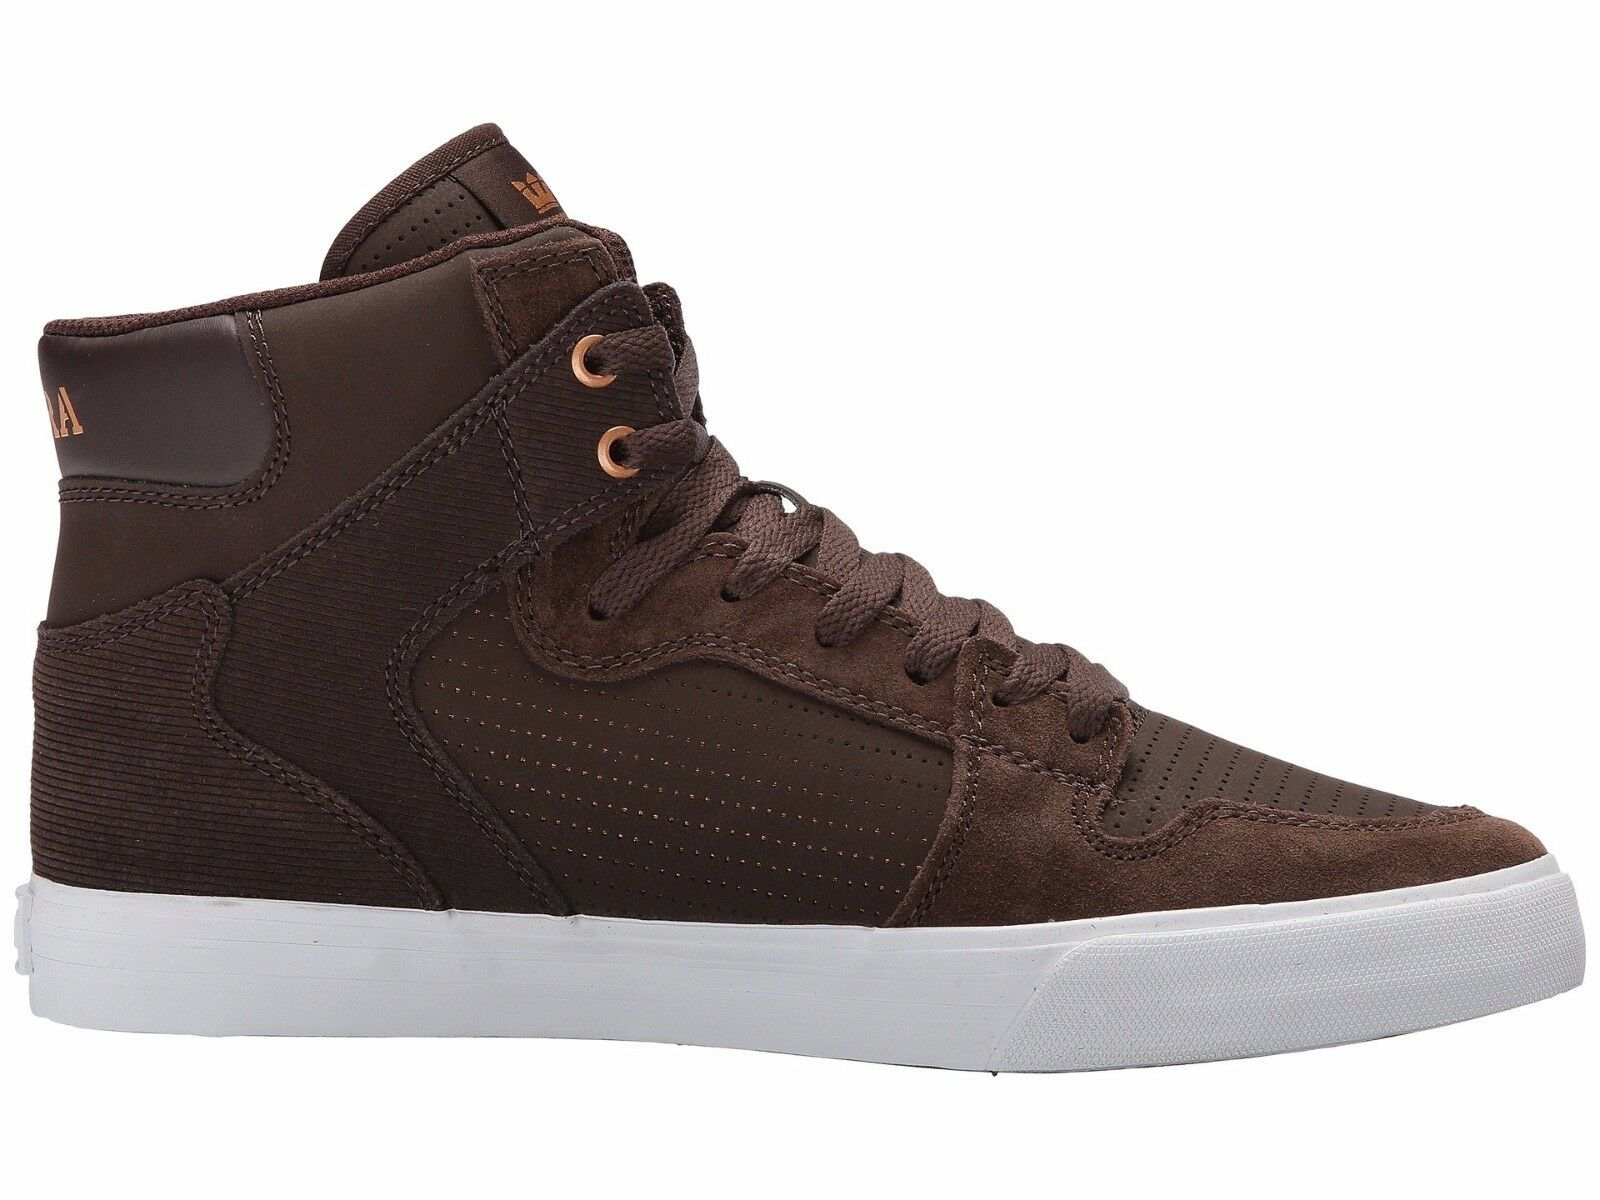 NEW SUPRA VAIDER DEMITASSE COPPER 08206-274 SKATEBOARDING SHOES SHOES SHOES 10 7abd48